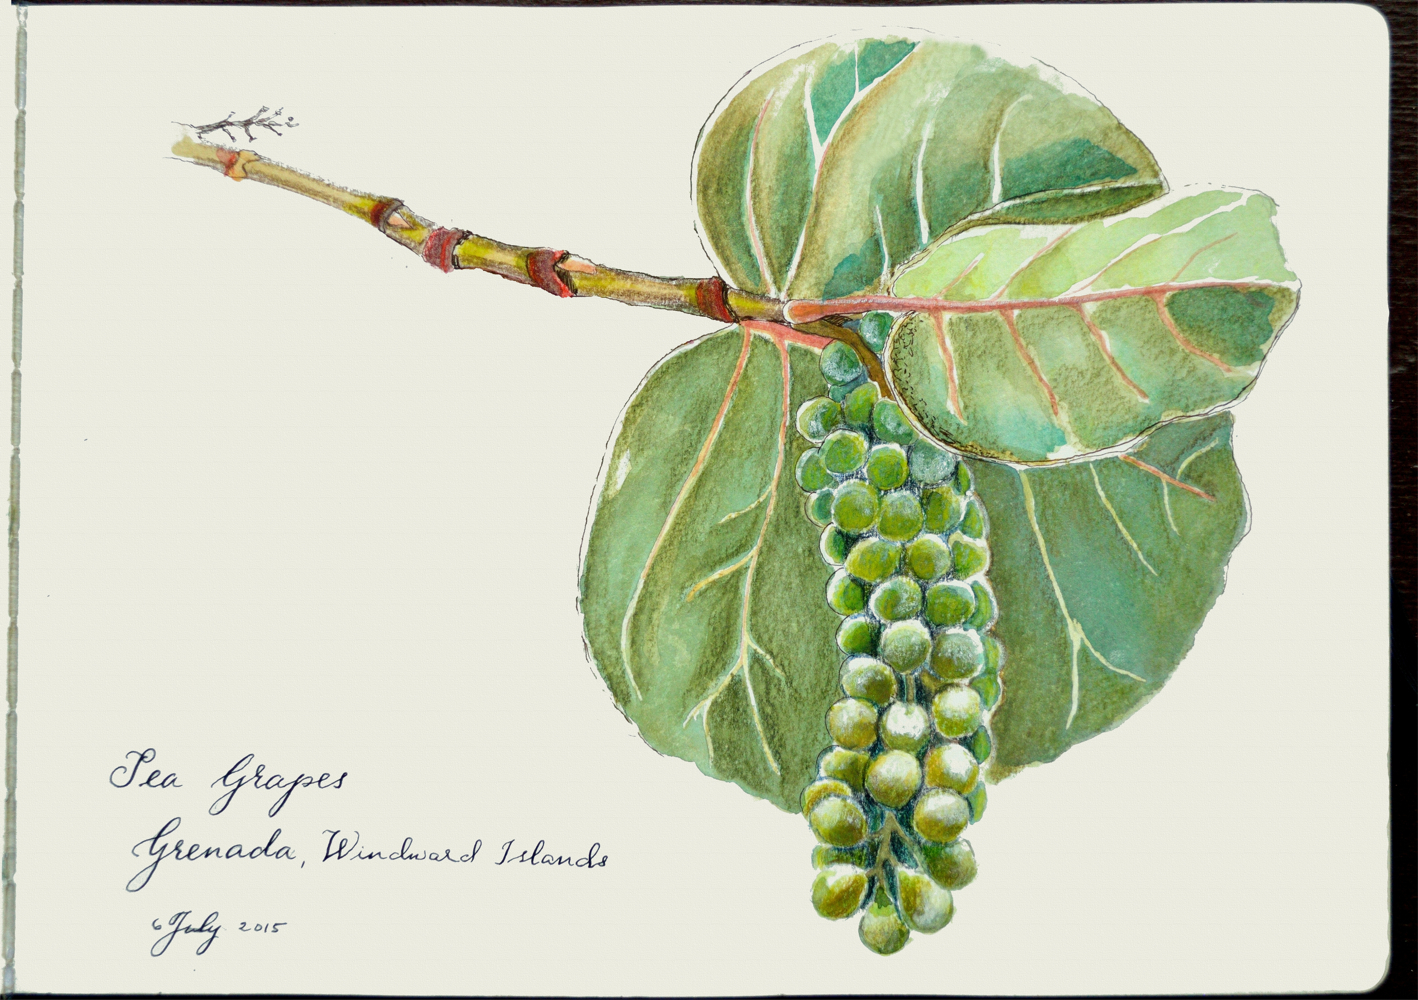 Coccoloba uvifera (sea grapes) in Grenada, West Indies